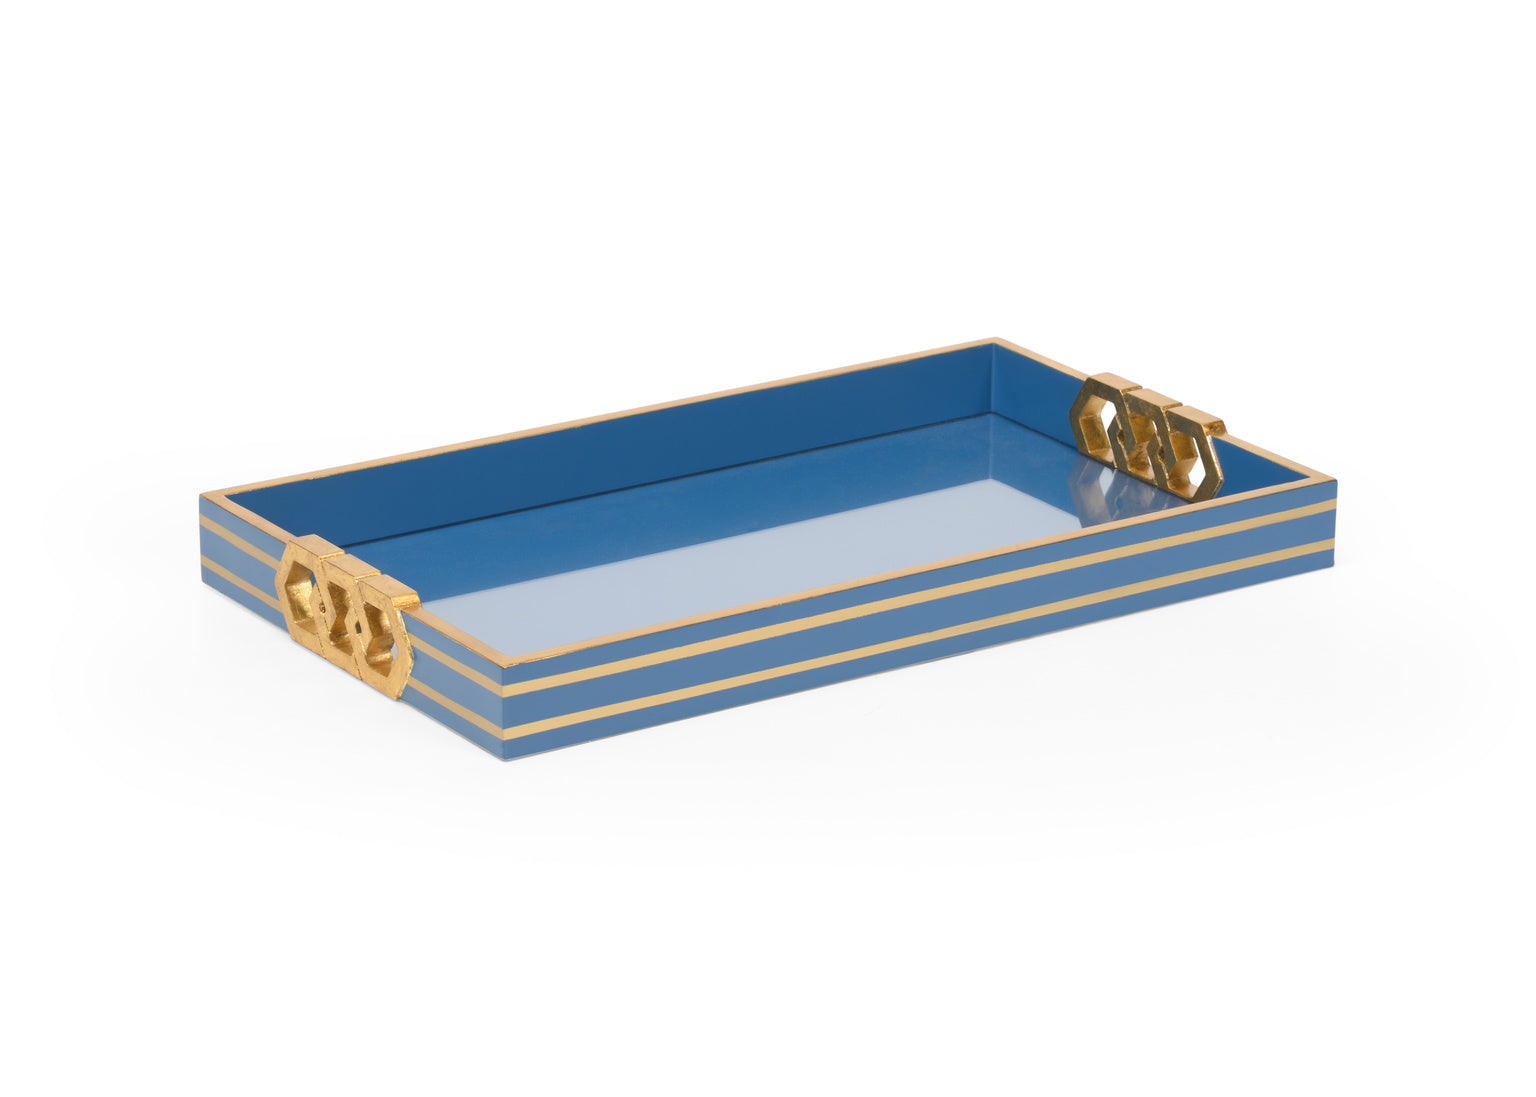 Shayla Copas Serving Tray - Pistachio 384806